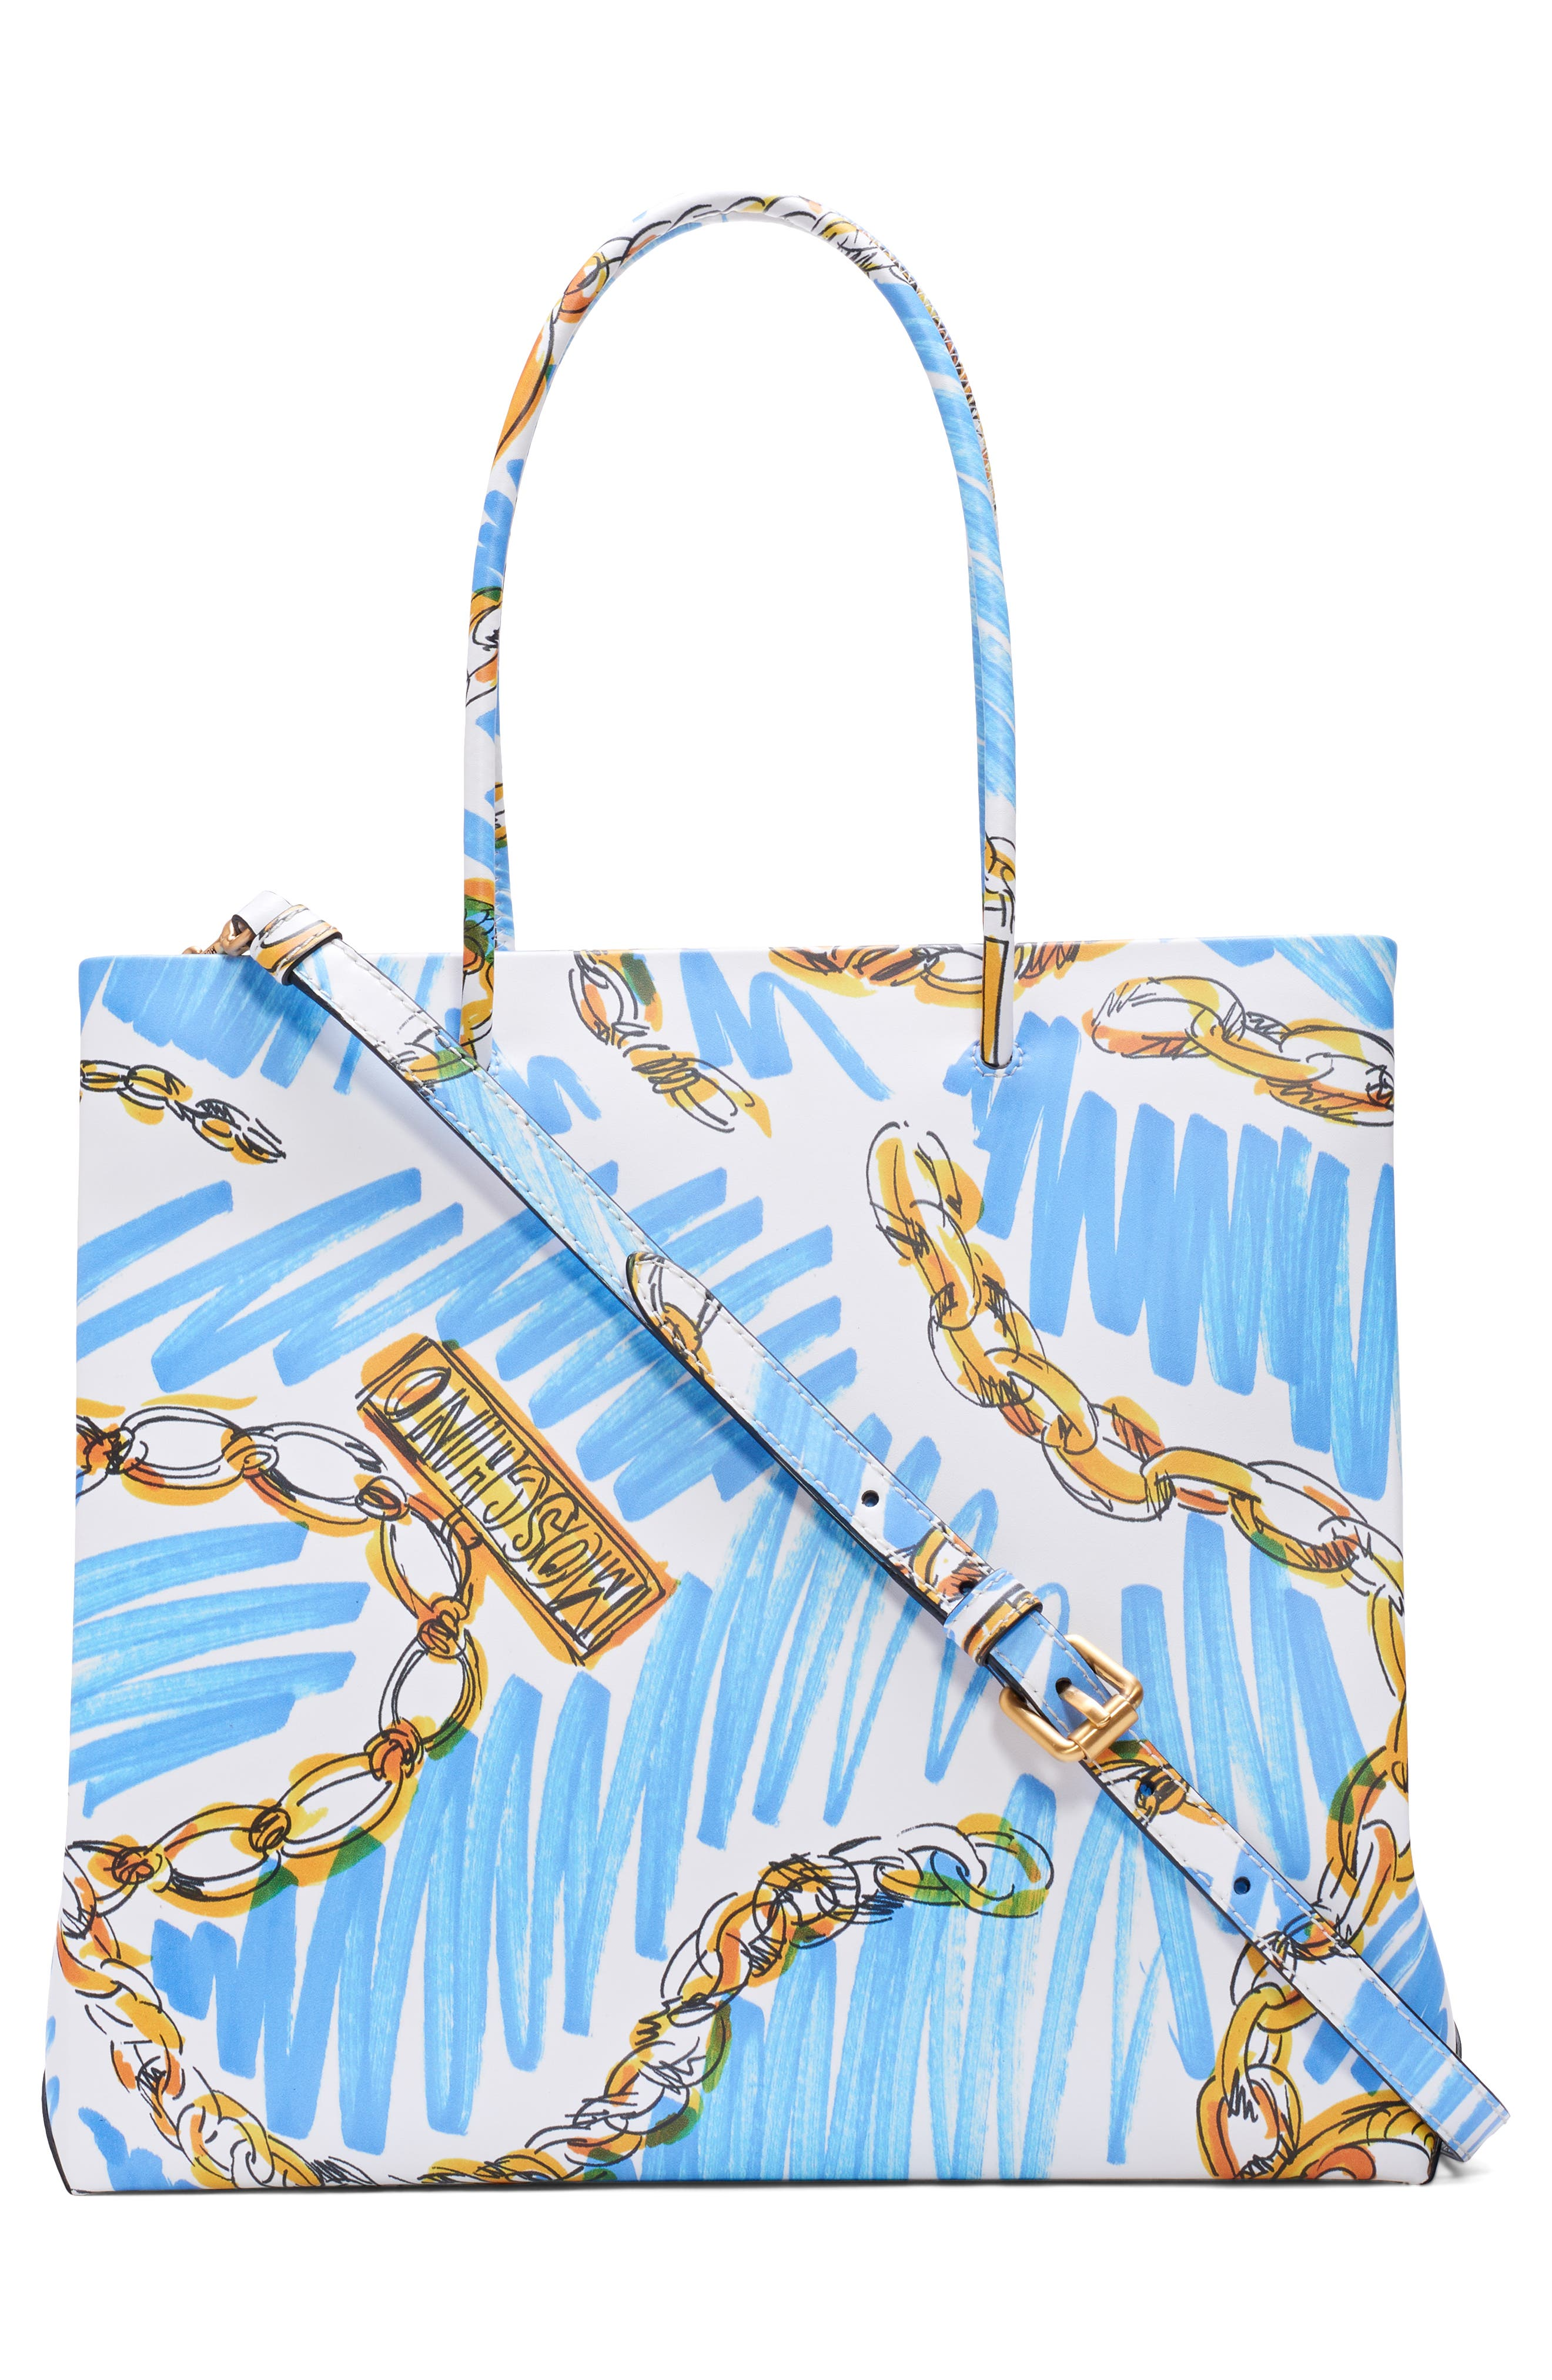 MOSCHINO, Medium Chain Scribble Tote, Alternate thumbnail 3, color, FANTASY PRINT WHITE